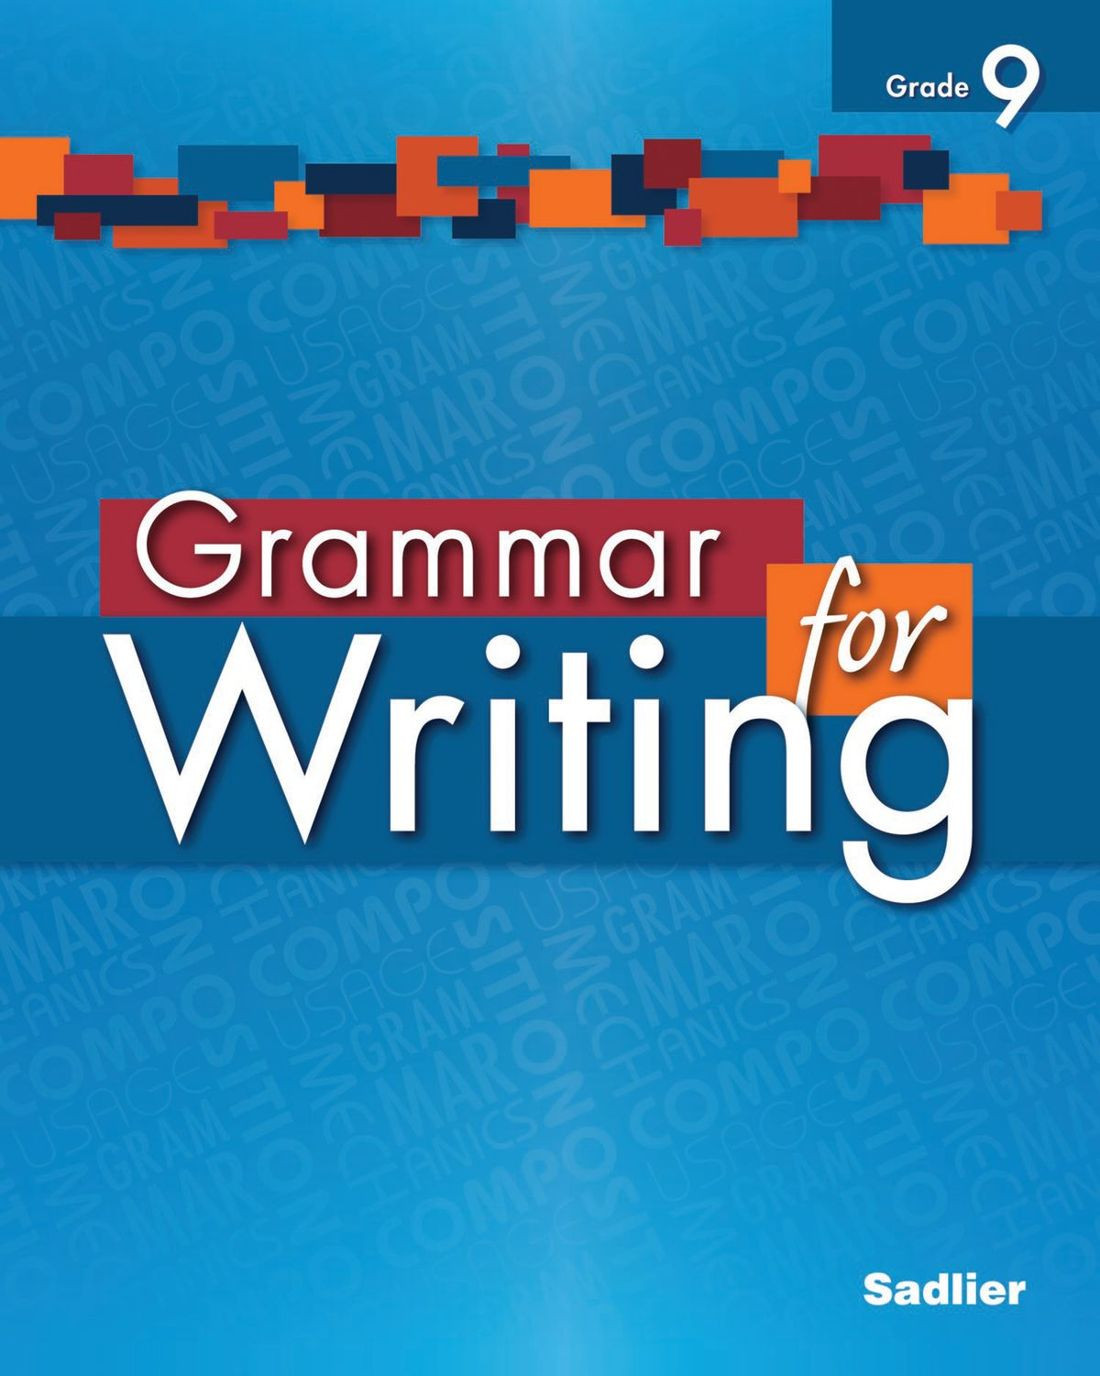 9th Grade Writing Worksheets Grammar for Writing Level Blue Grade 9 Student Edition